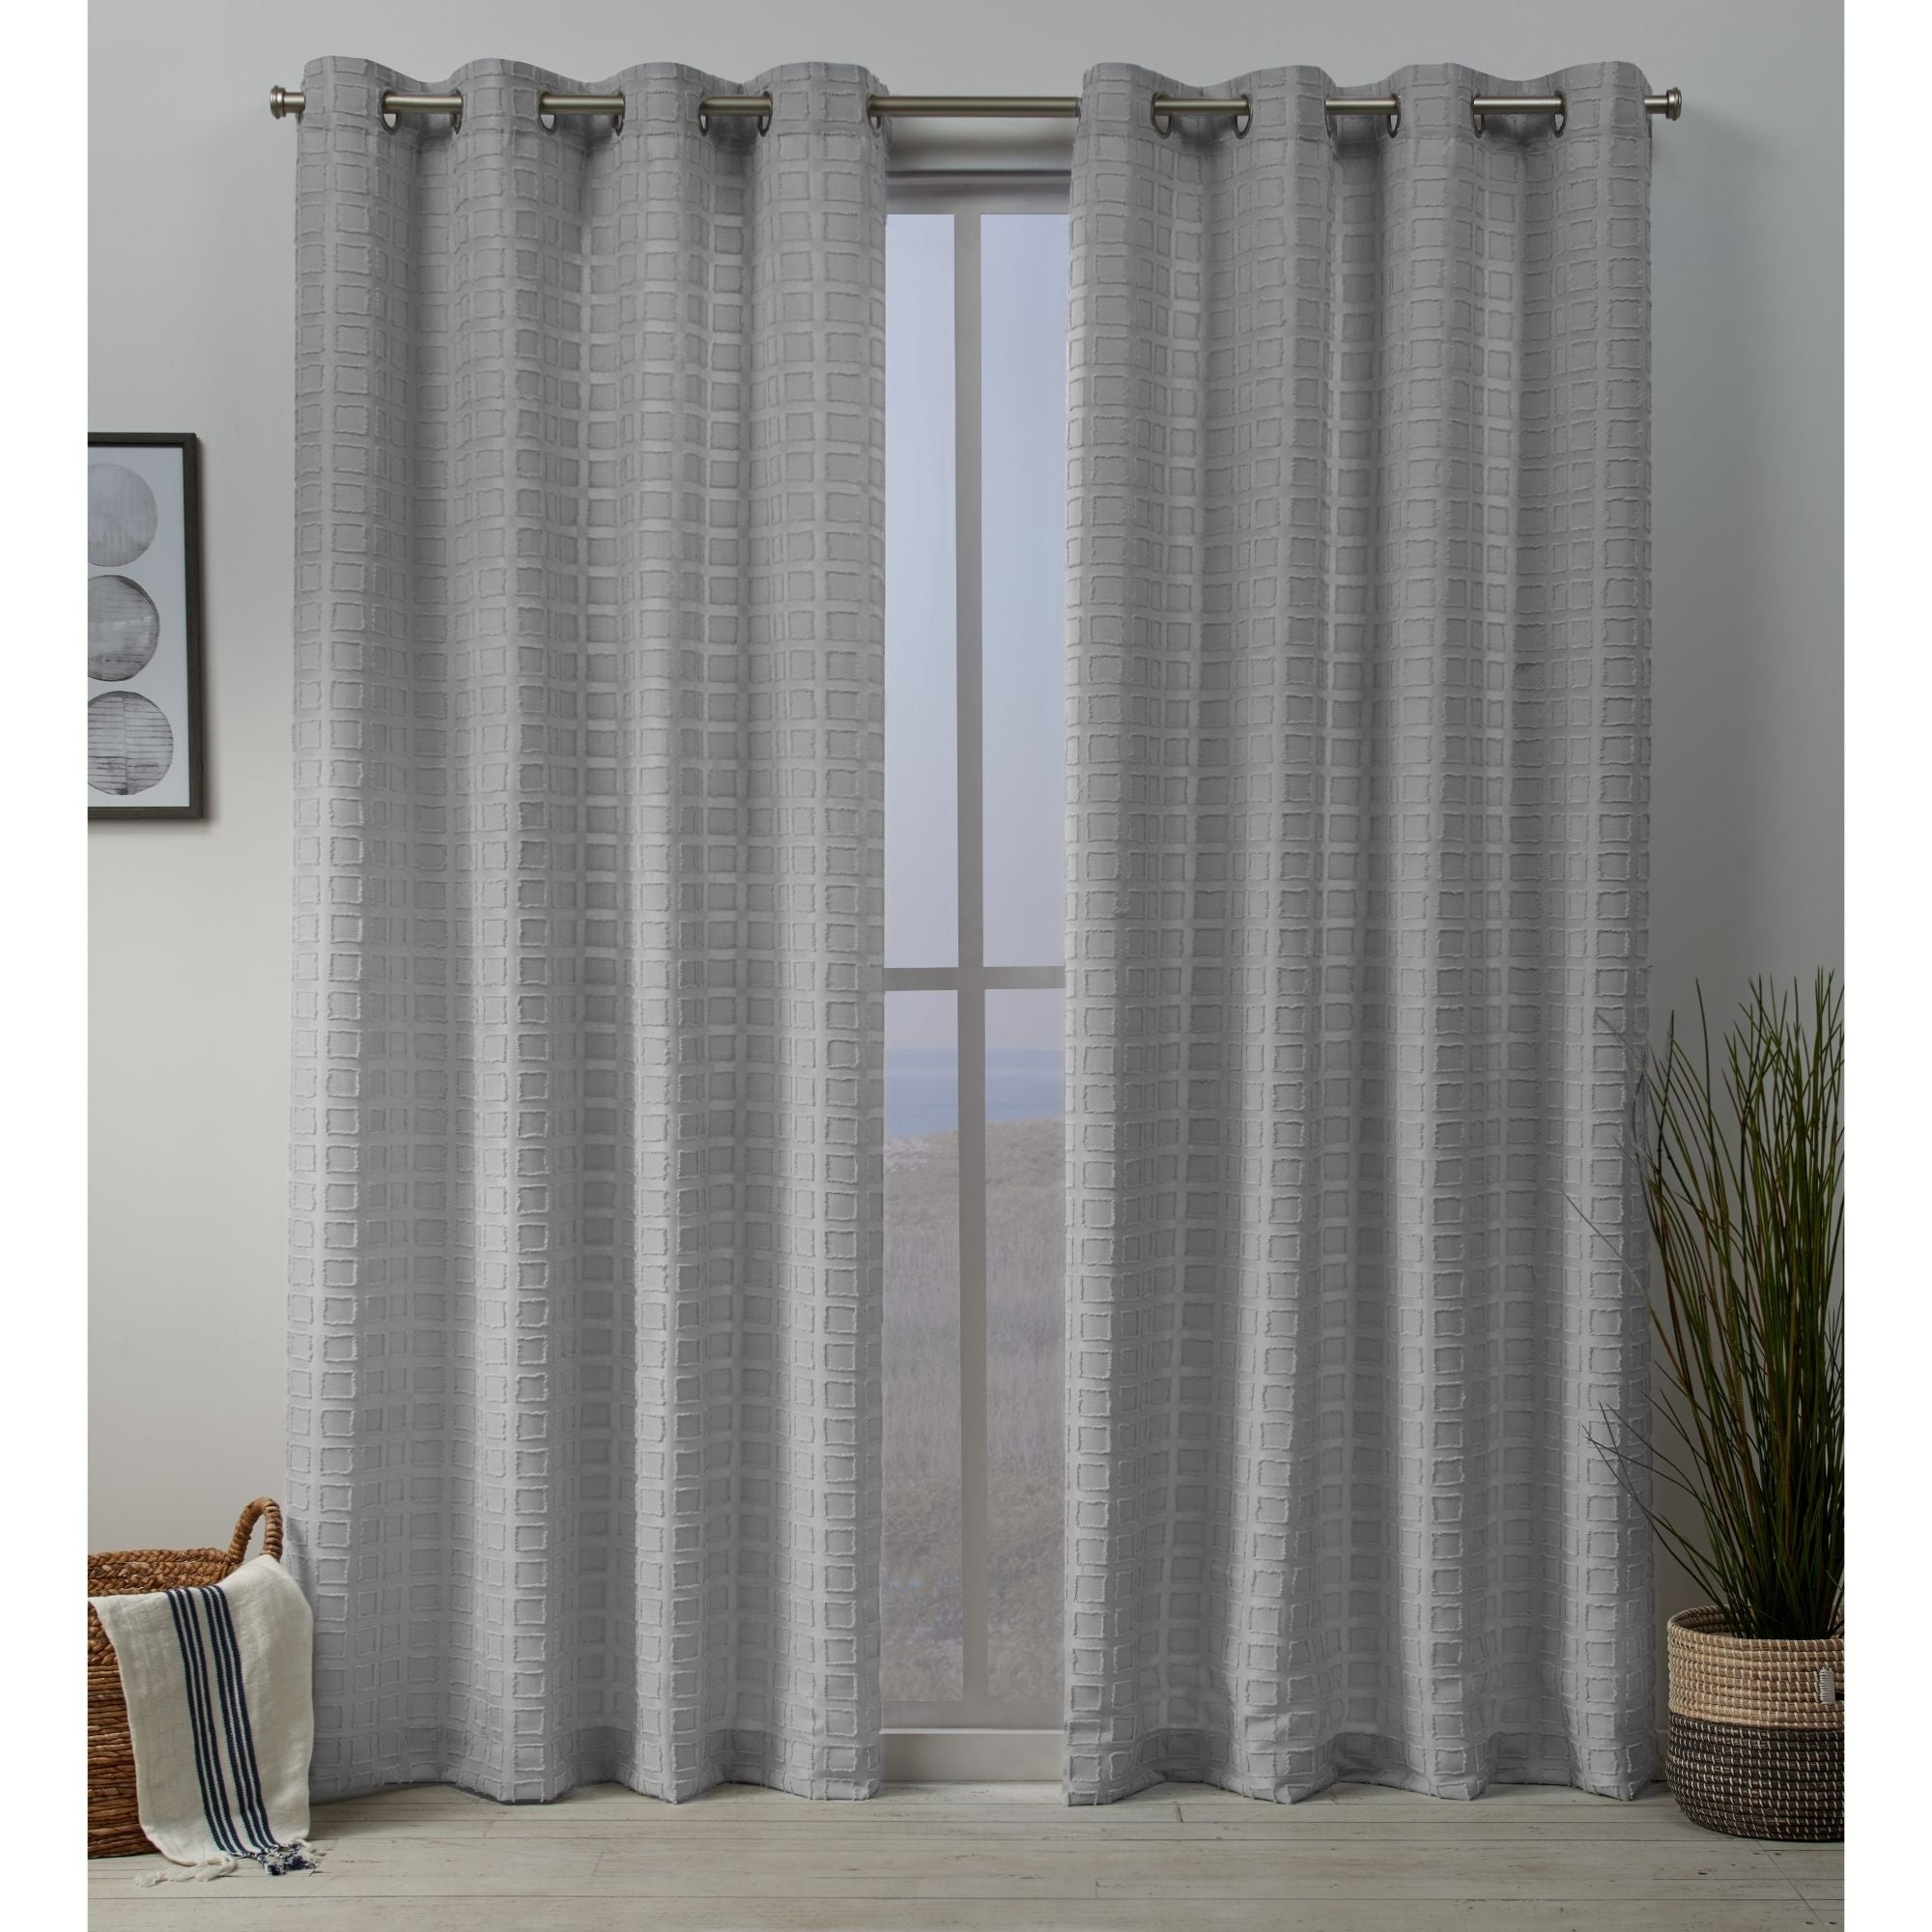 Details About Ati Home Squared Embellished Grommet Top Curtain Panel Pair Within Kochi Linen Blend Window Grommet Top Curtain Panel Pairs (View 15 of 20)